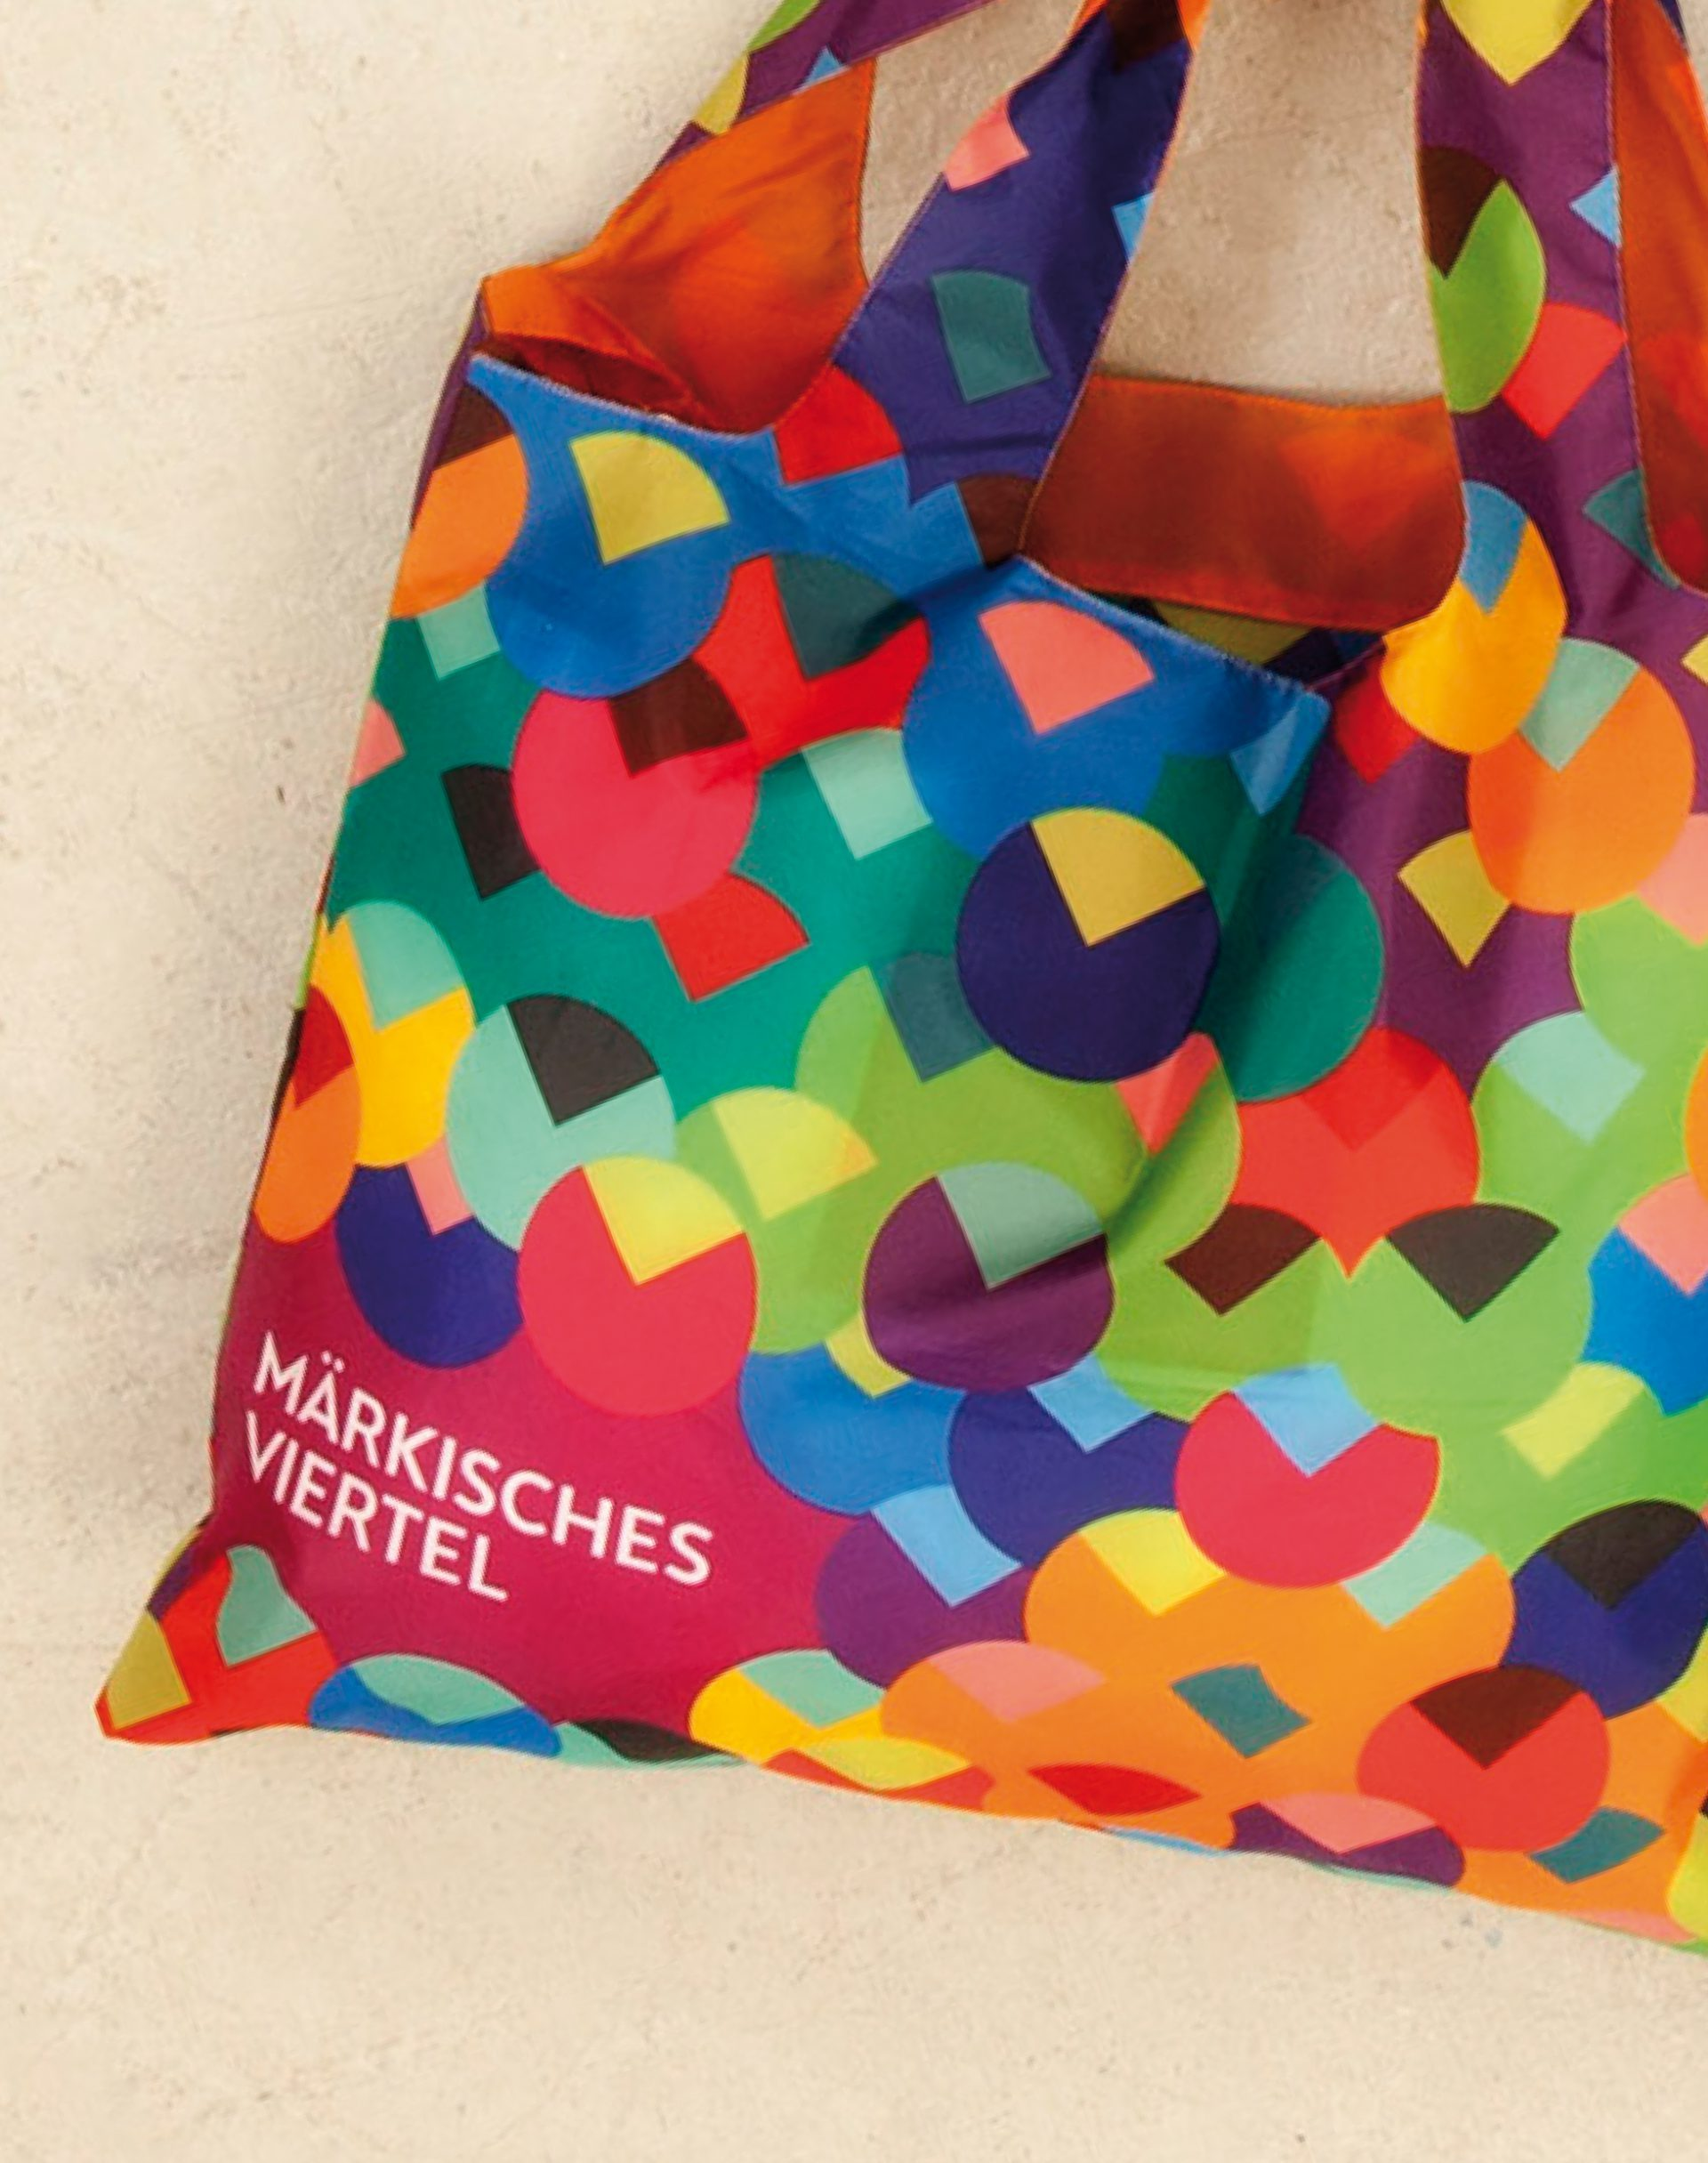 Märkisches Viertel Corporate Design Tasche